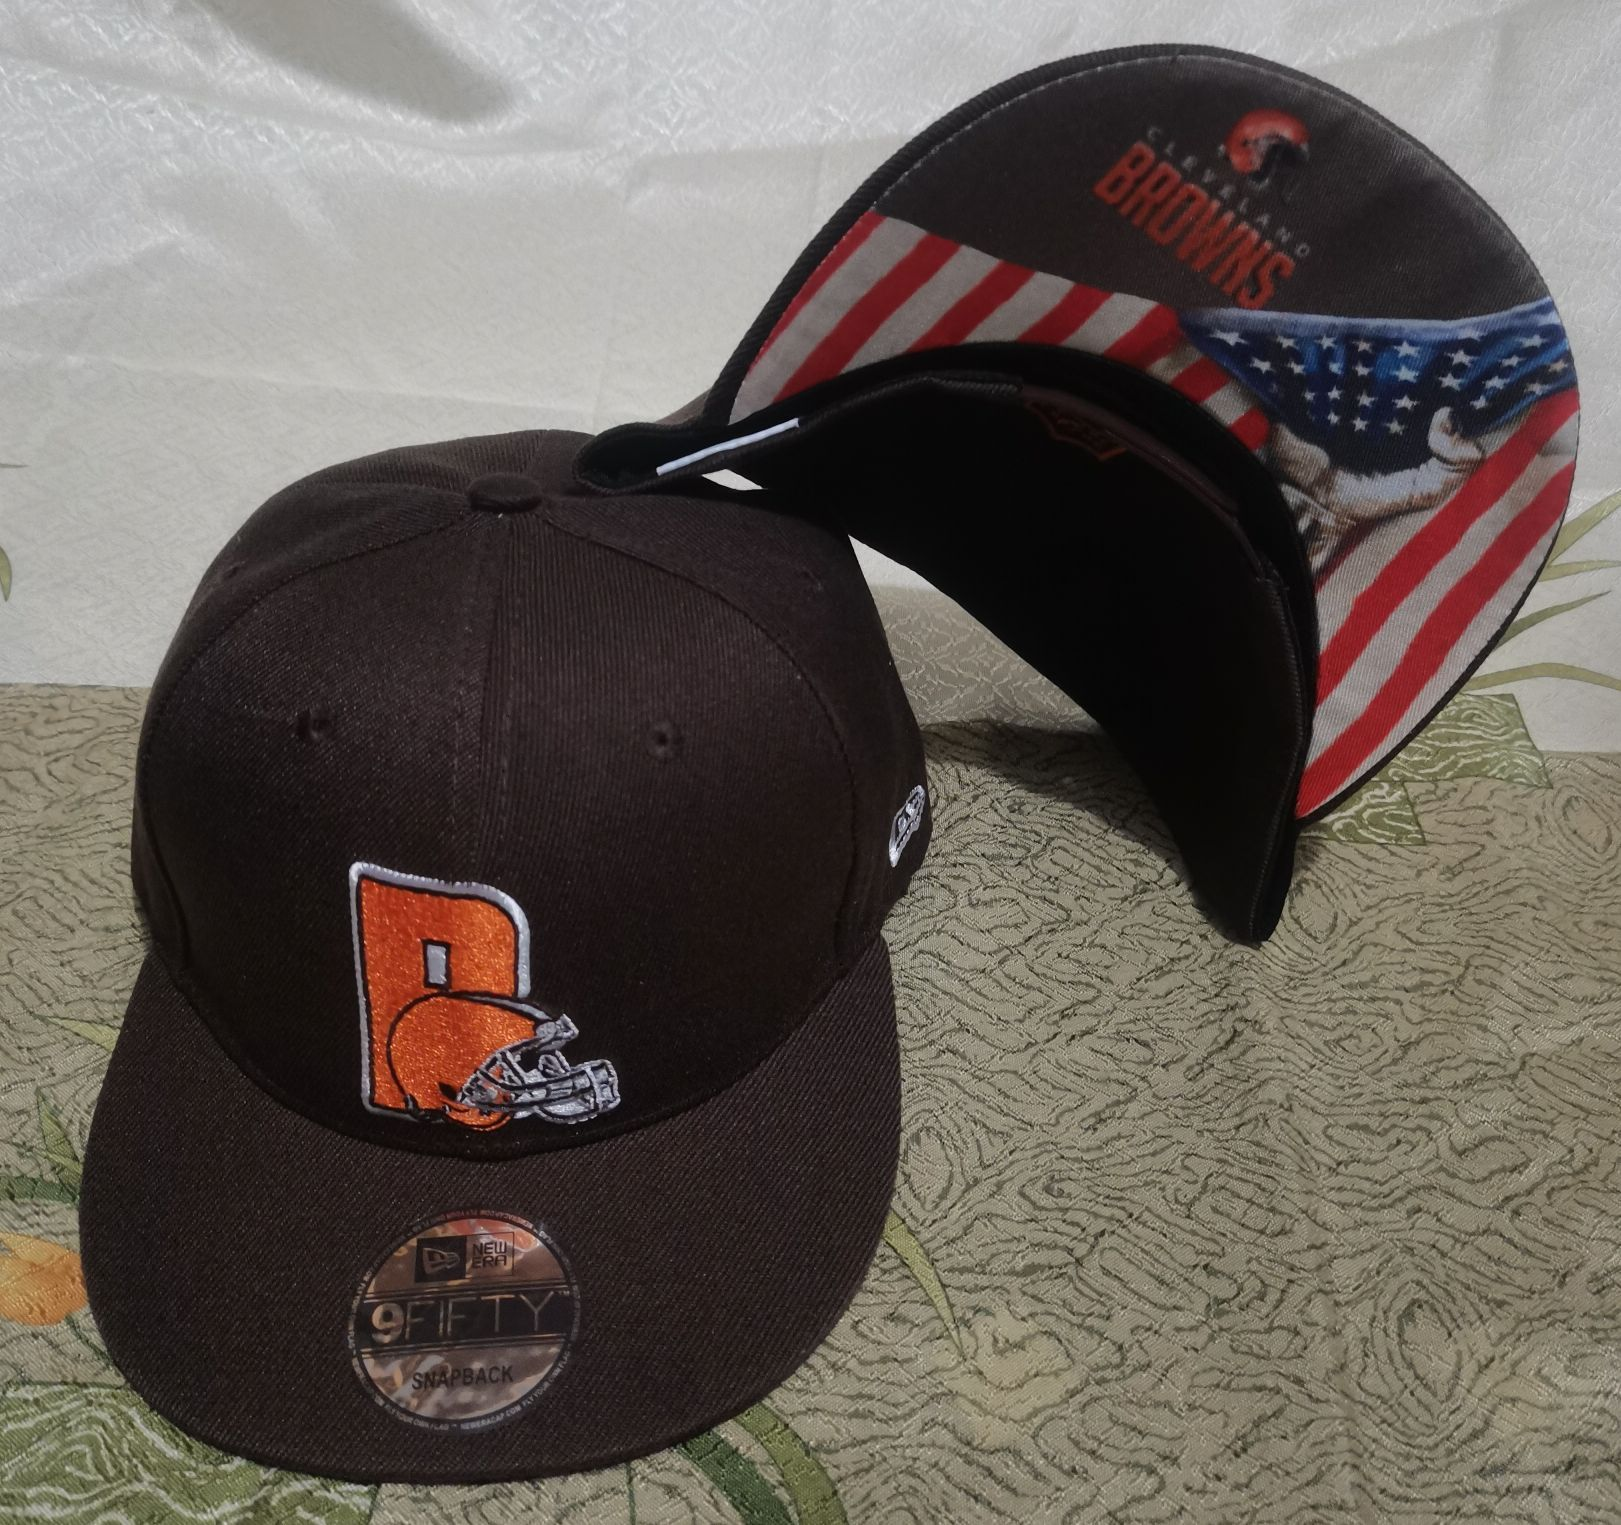 Wholesale 2021 NFL Cleveland Browns 1 hat